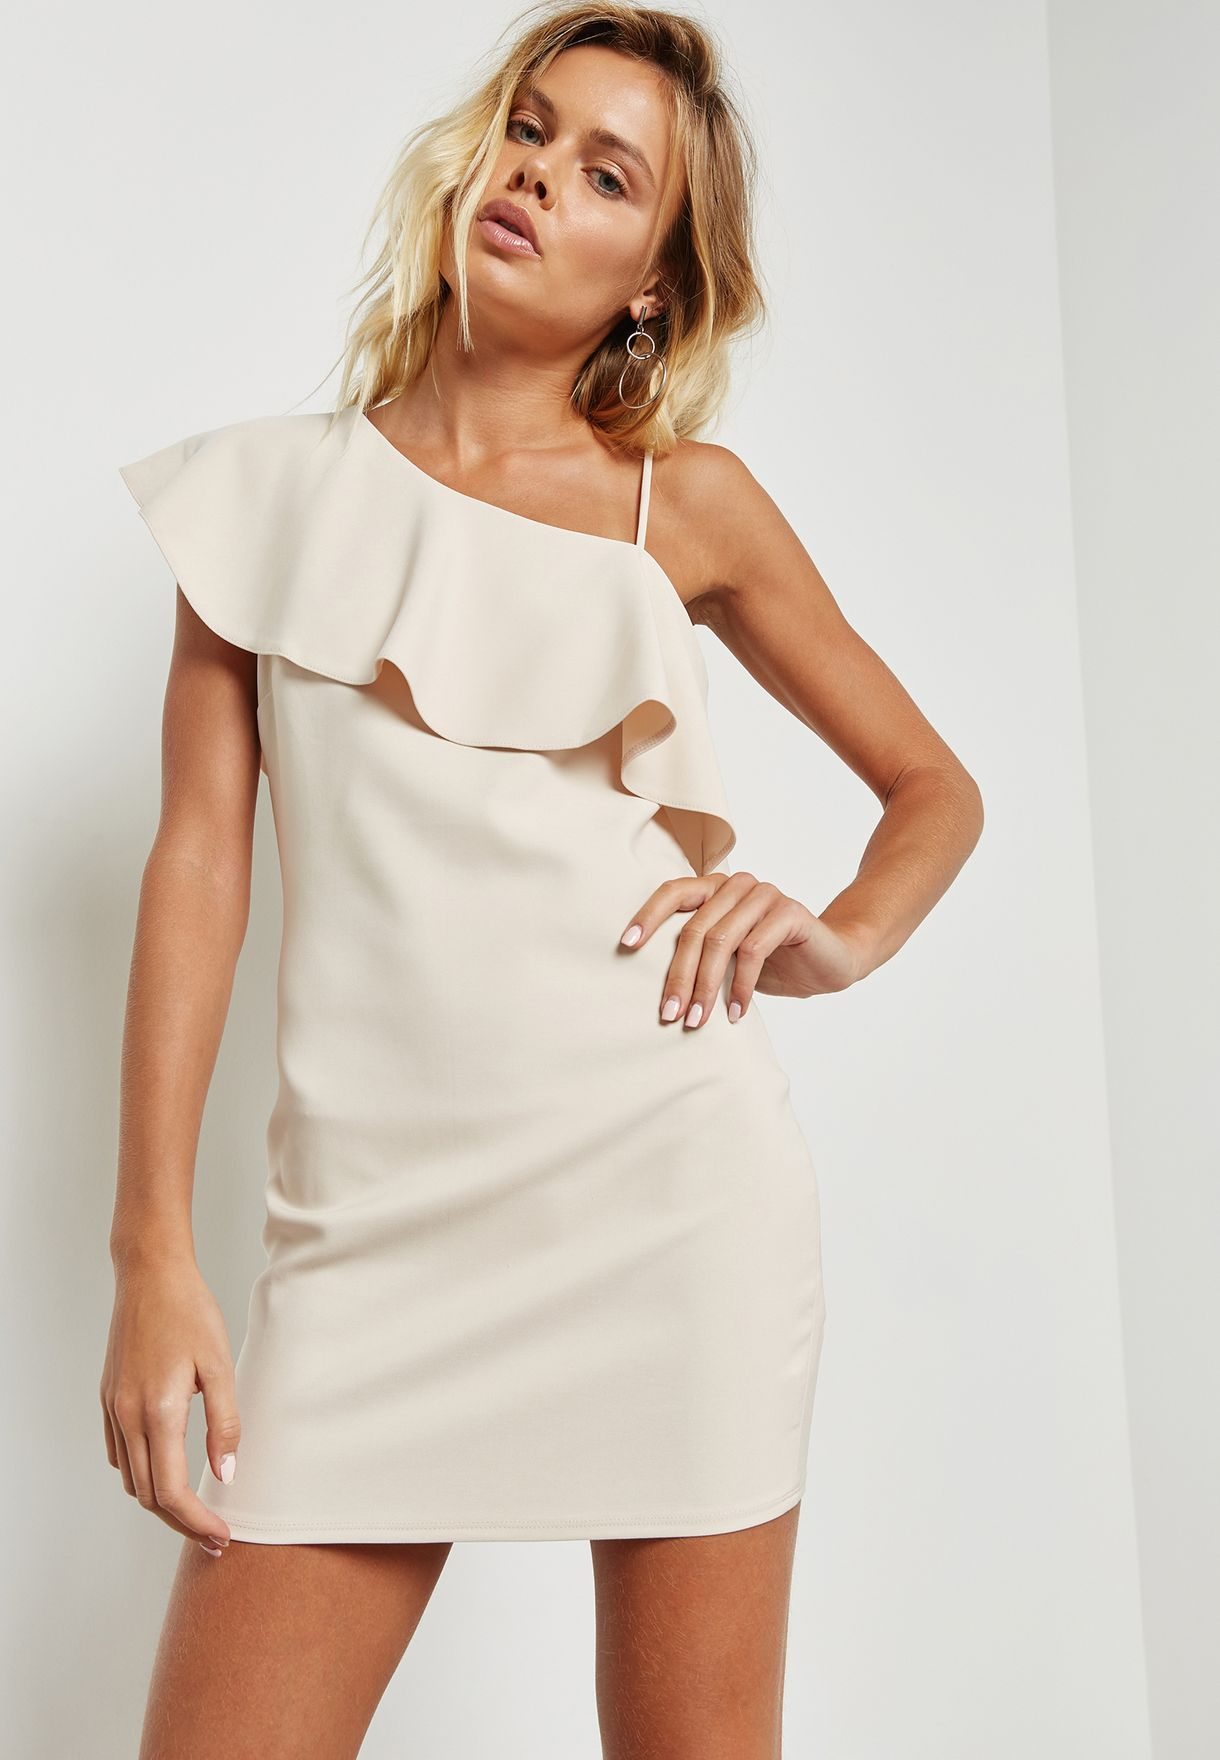 White One Shoulder Dress Forever 21